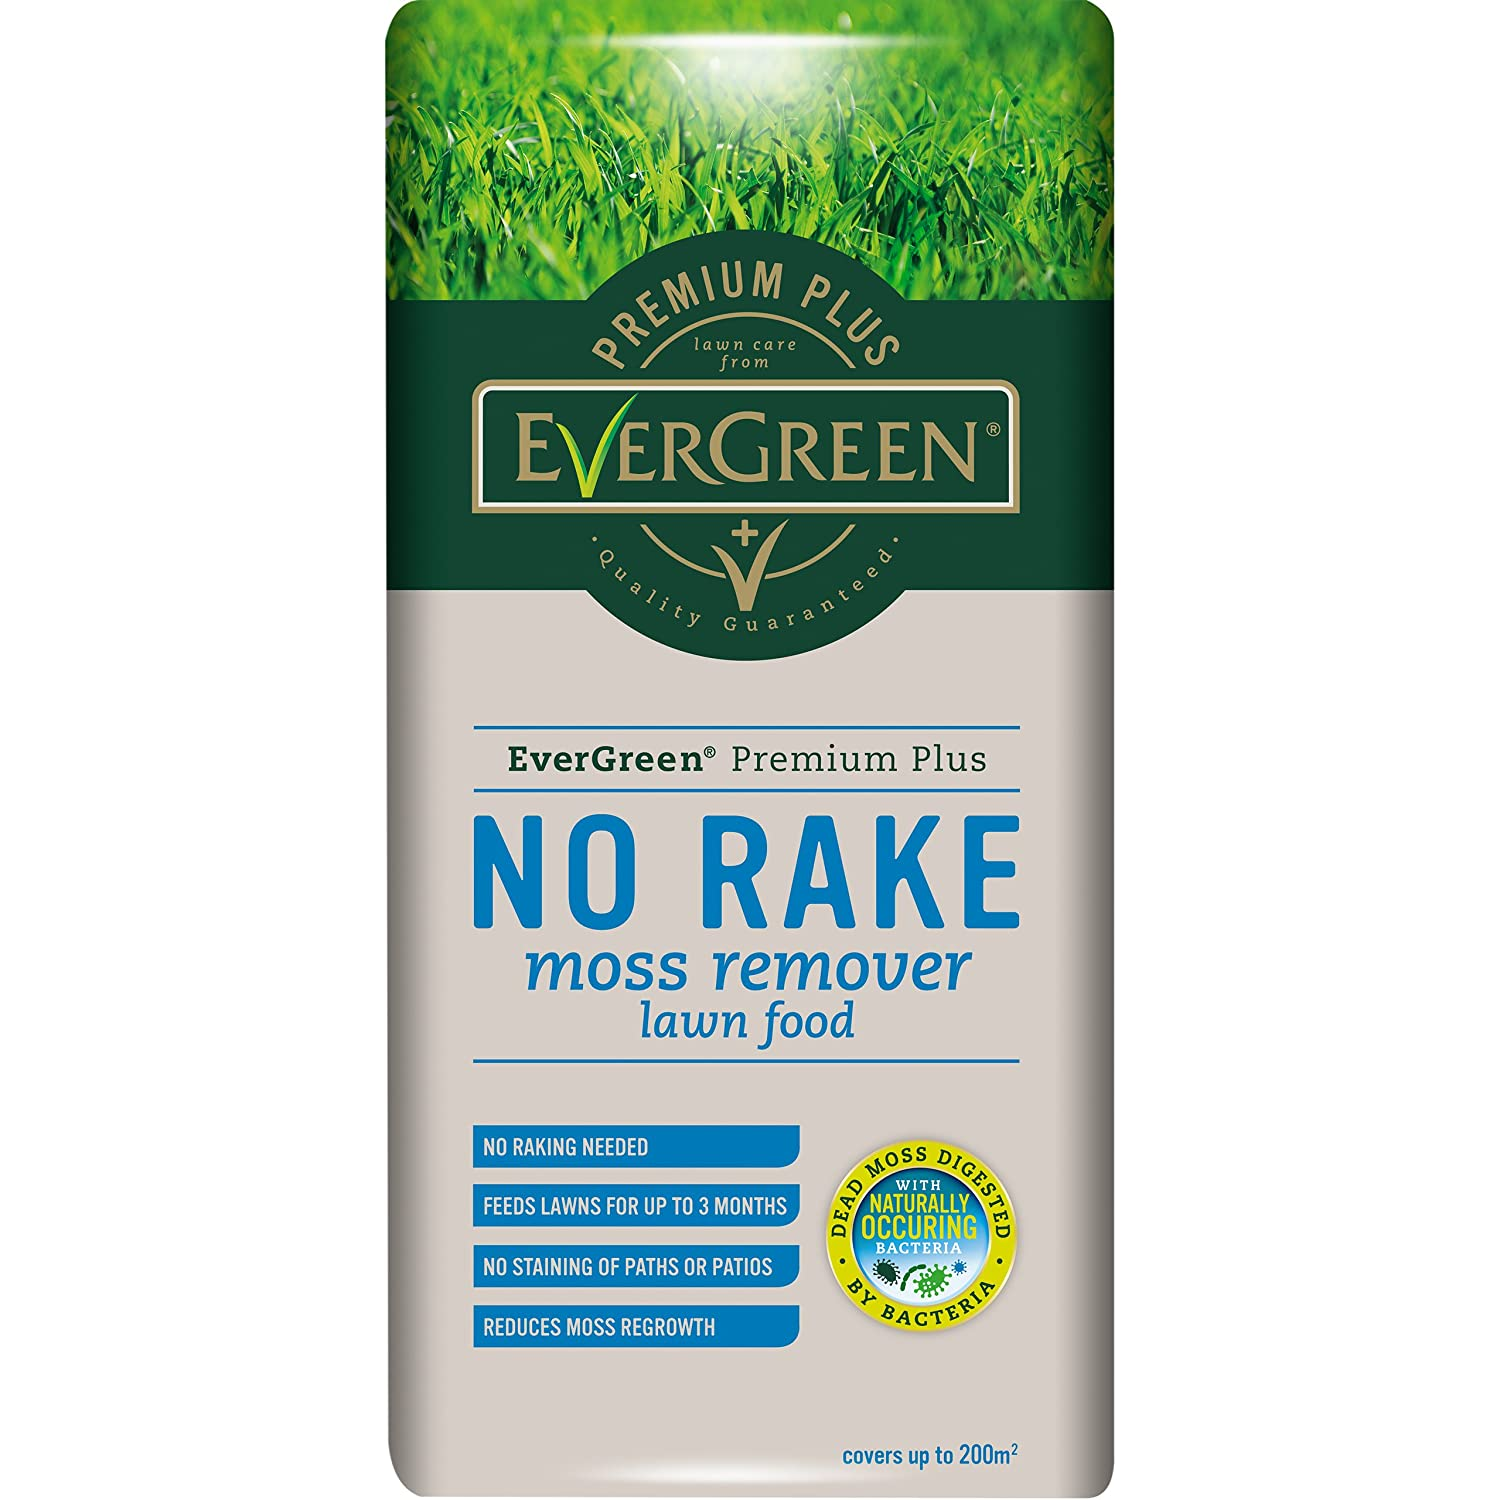 EverGreen 119664 Lawn Food, Green, 50sqm Evergreen Garden Care Ltd